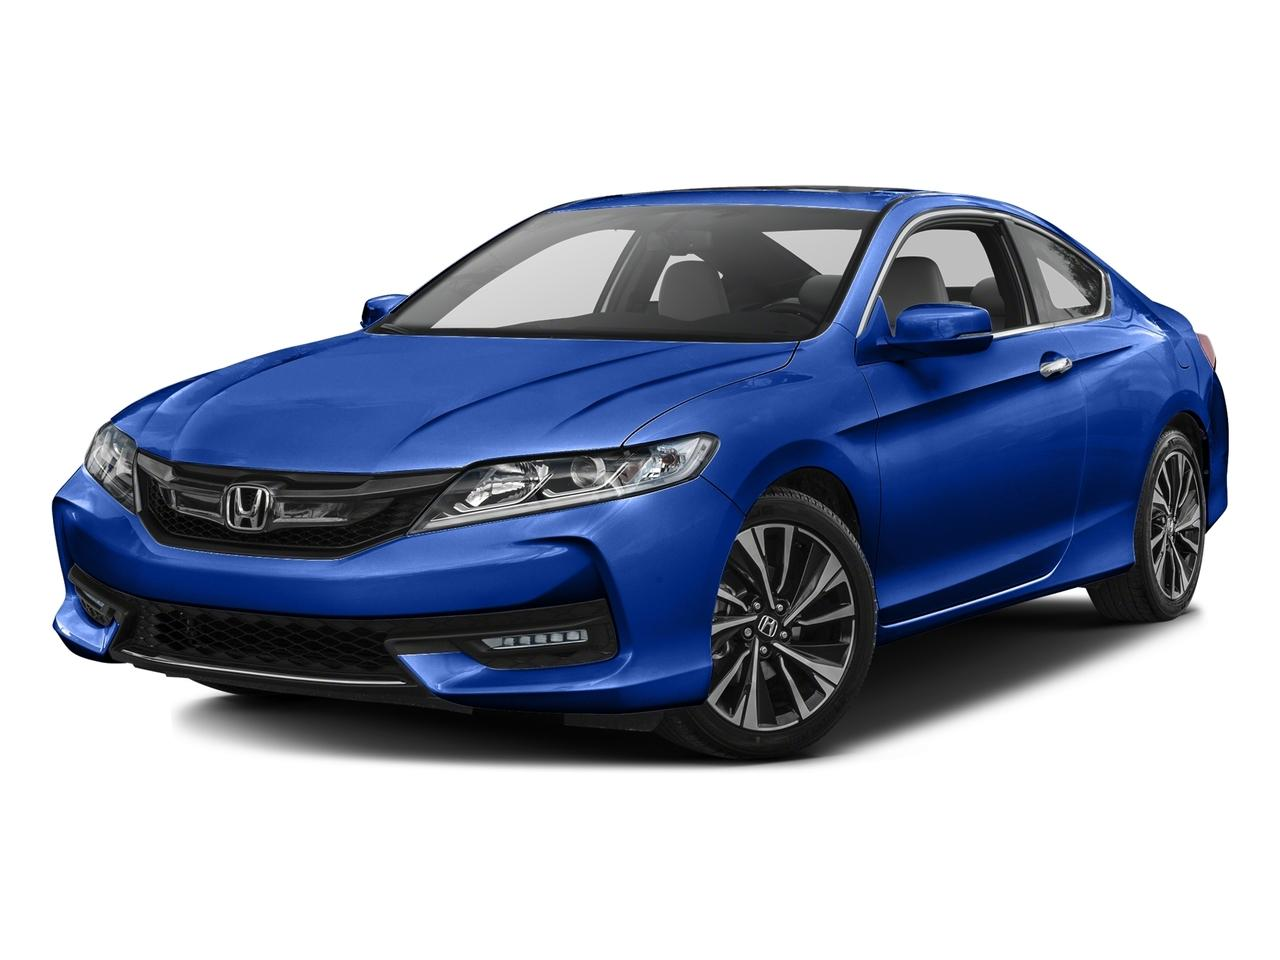 2016 Honda Accord Coupe Vehicle Photo in Franklin, TN 37067